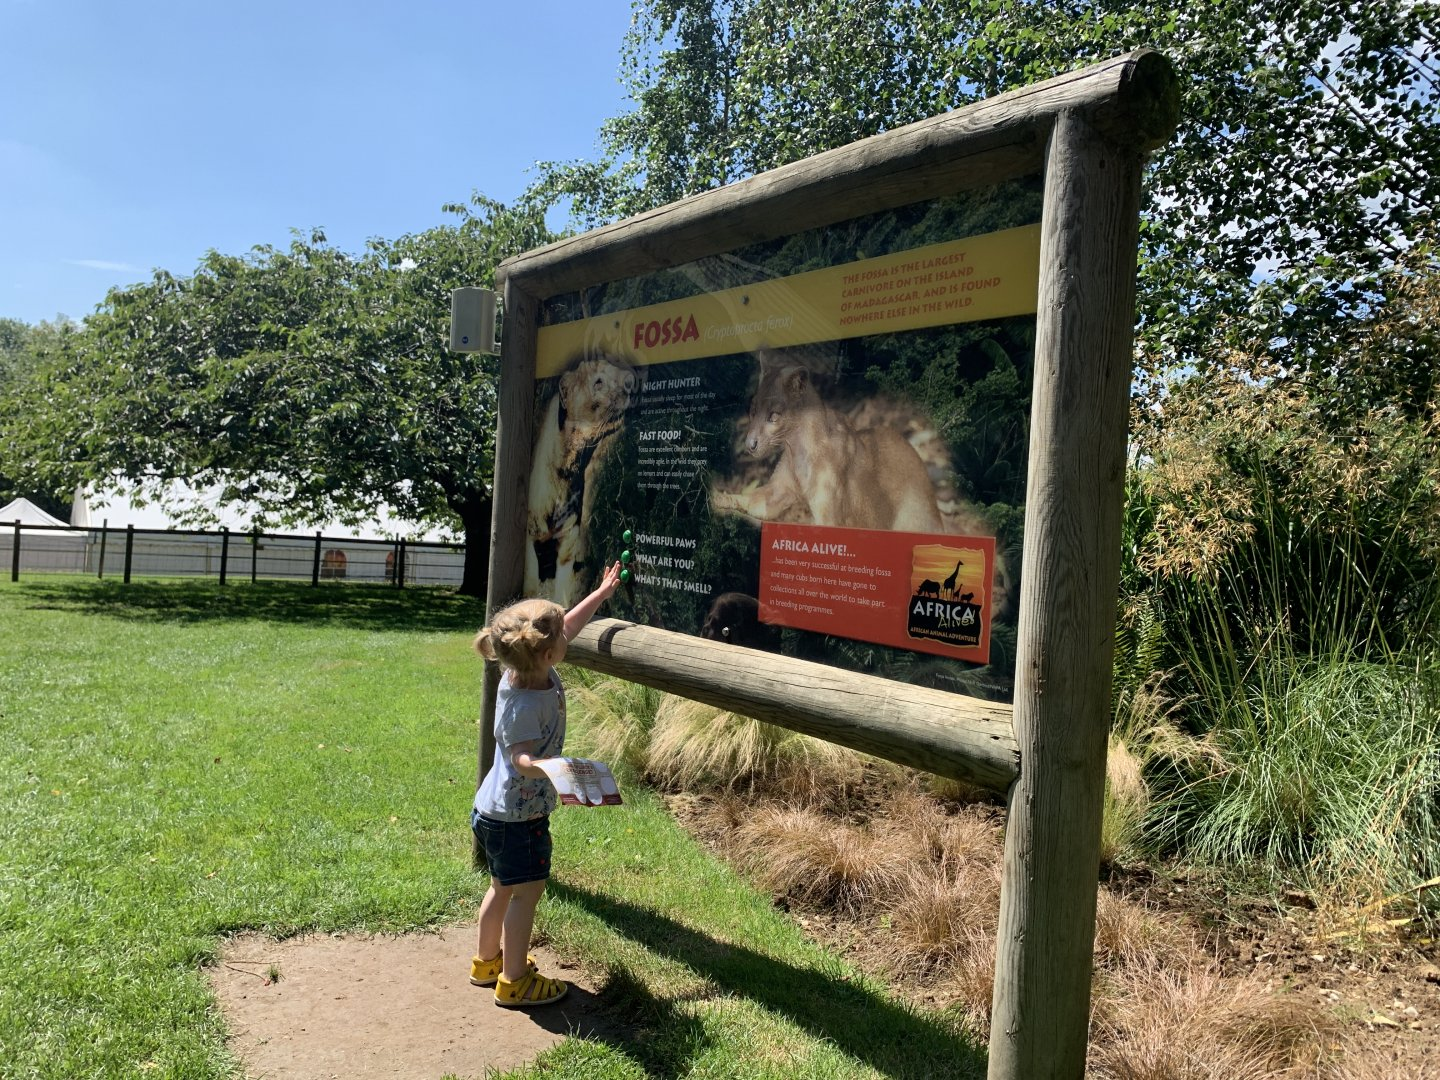 M presses buttons on the Fossa information display at Africa Alive.